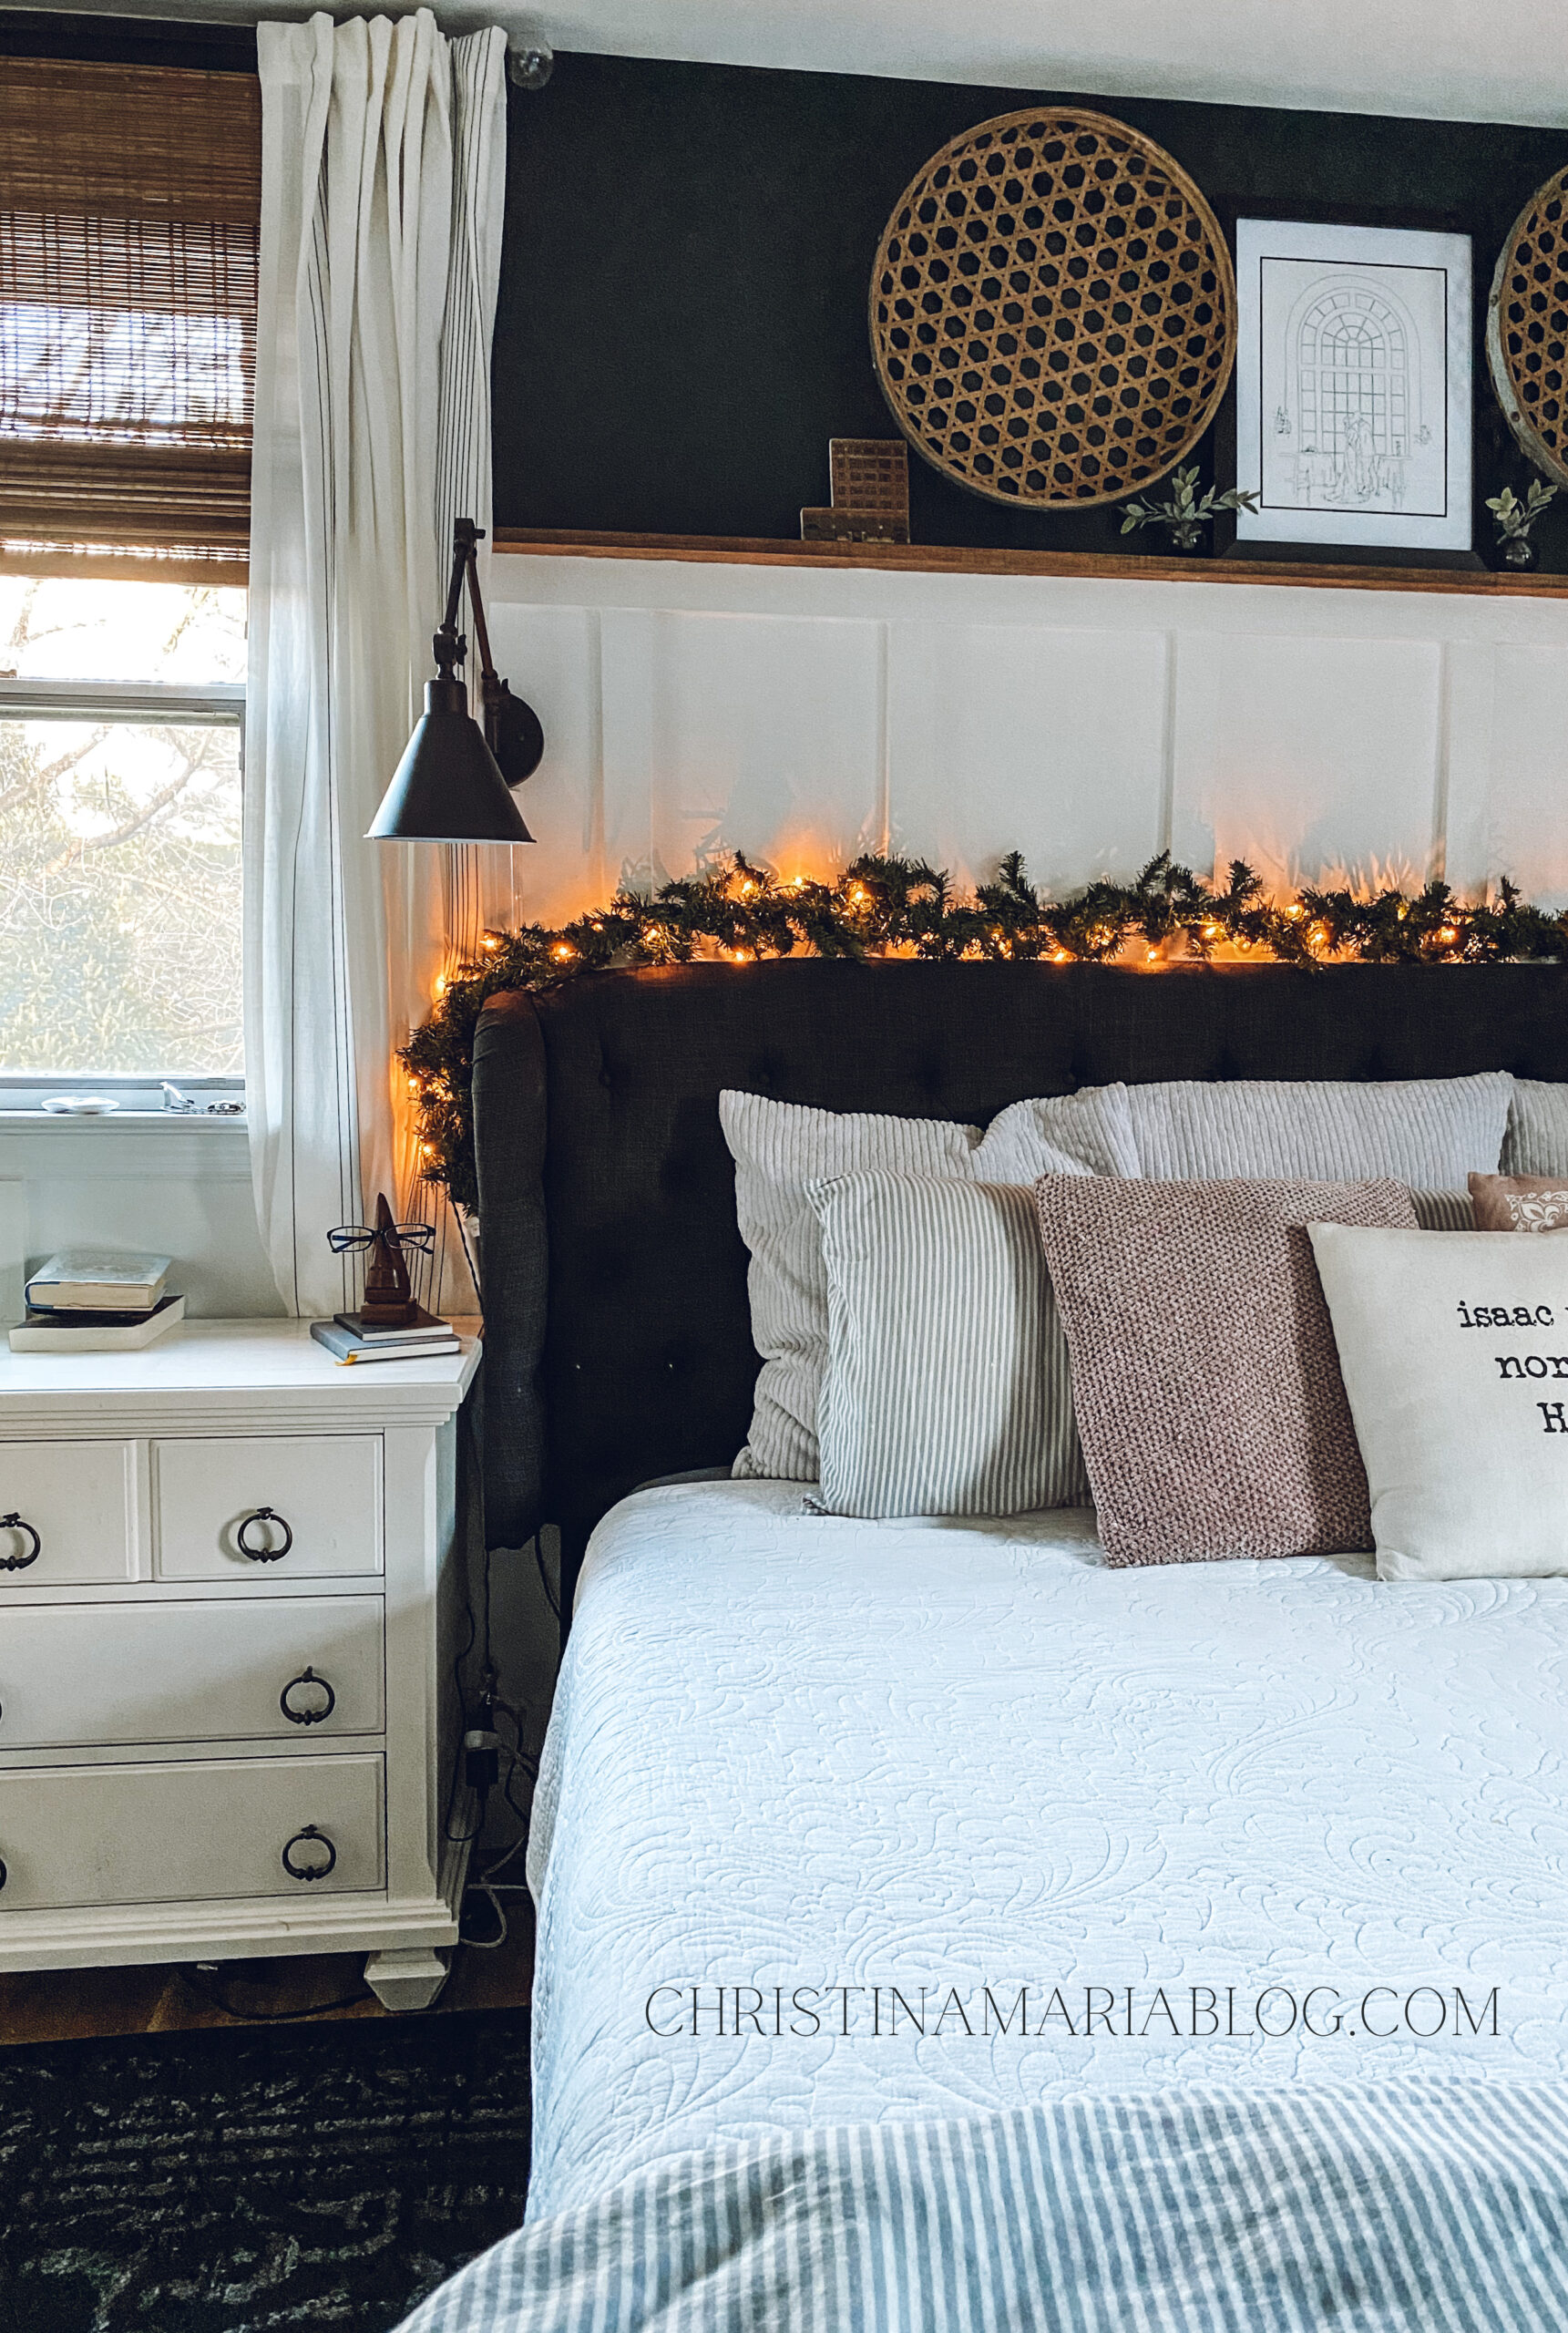 Cozy Christmas decorating tips